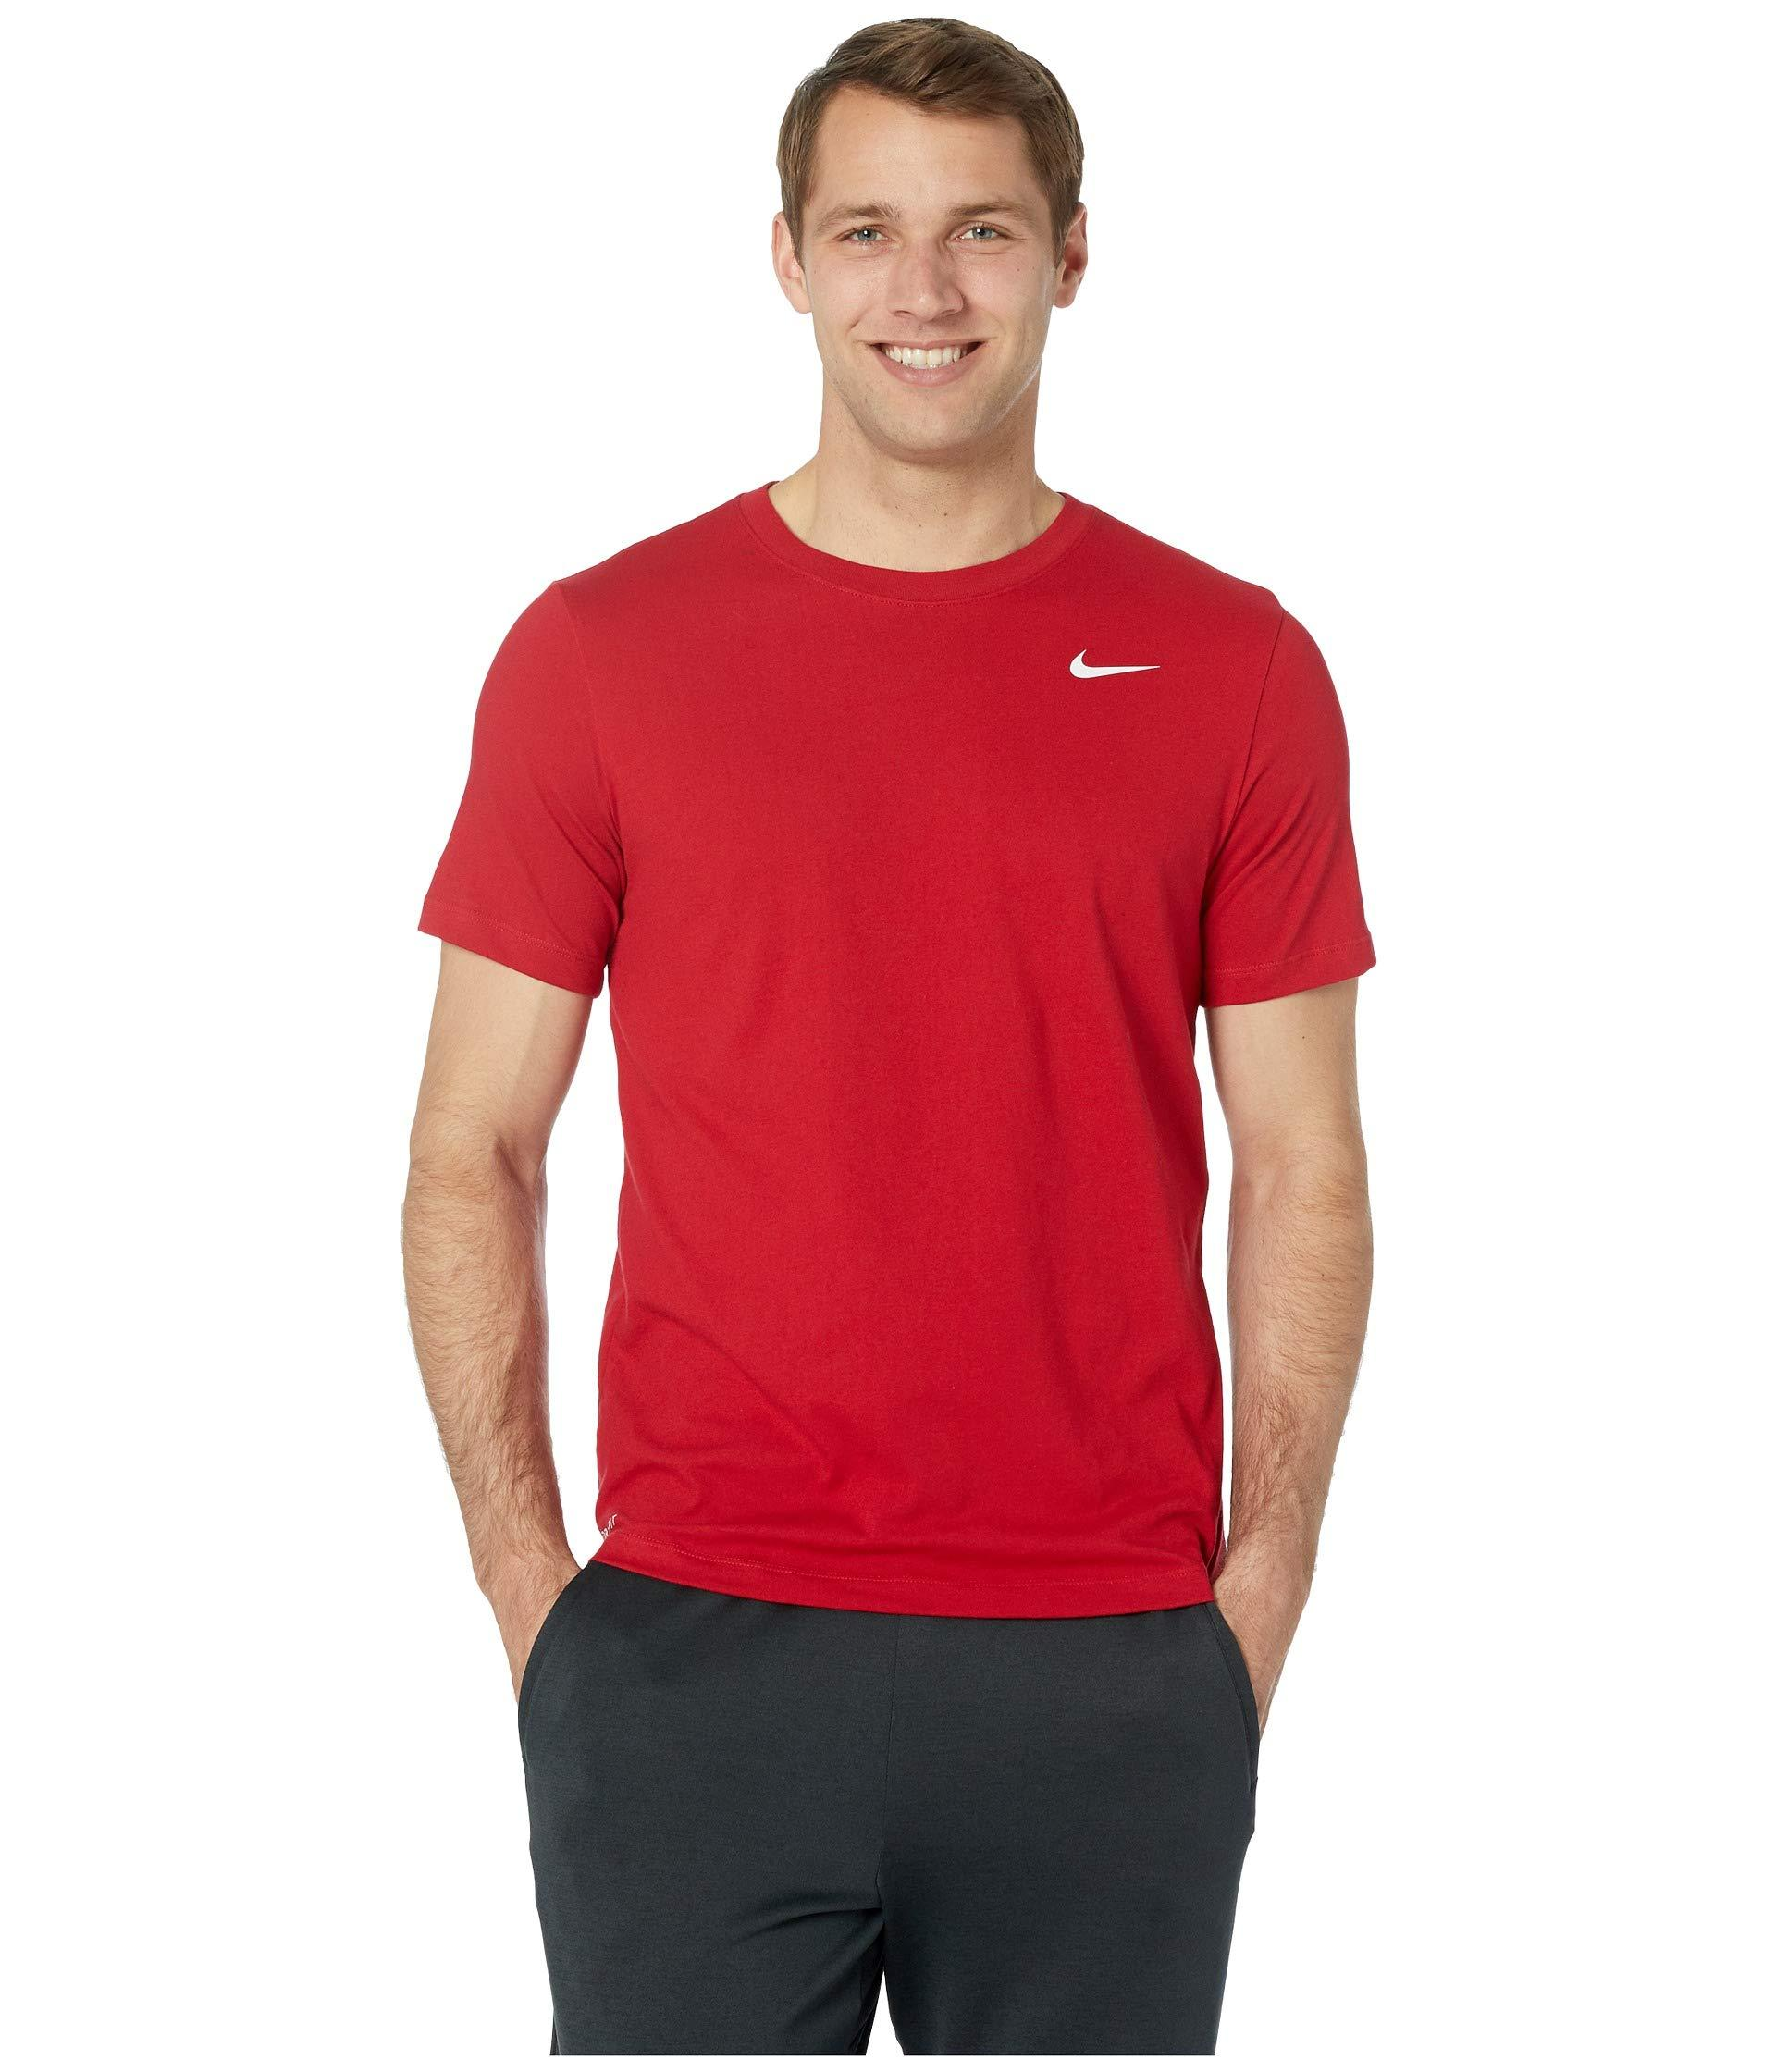 4e944d440e6b Lyst - Nike Dry Tee Dri-fittm Cotton Crew Solid (black white) Men s ...